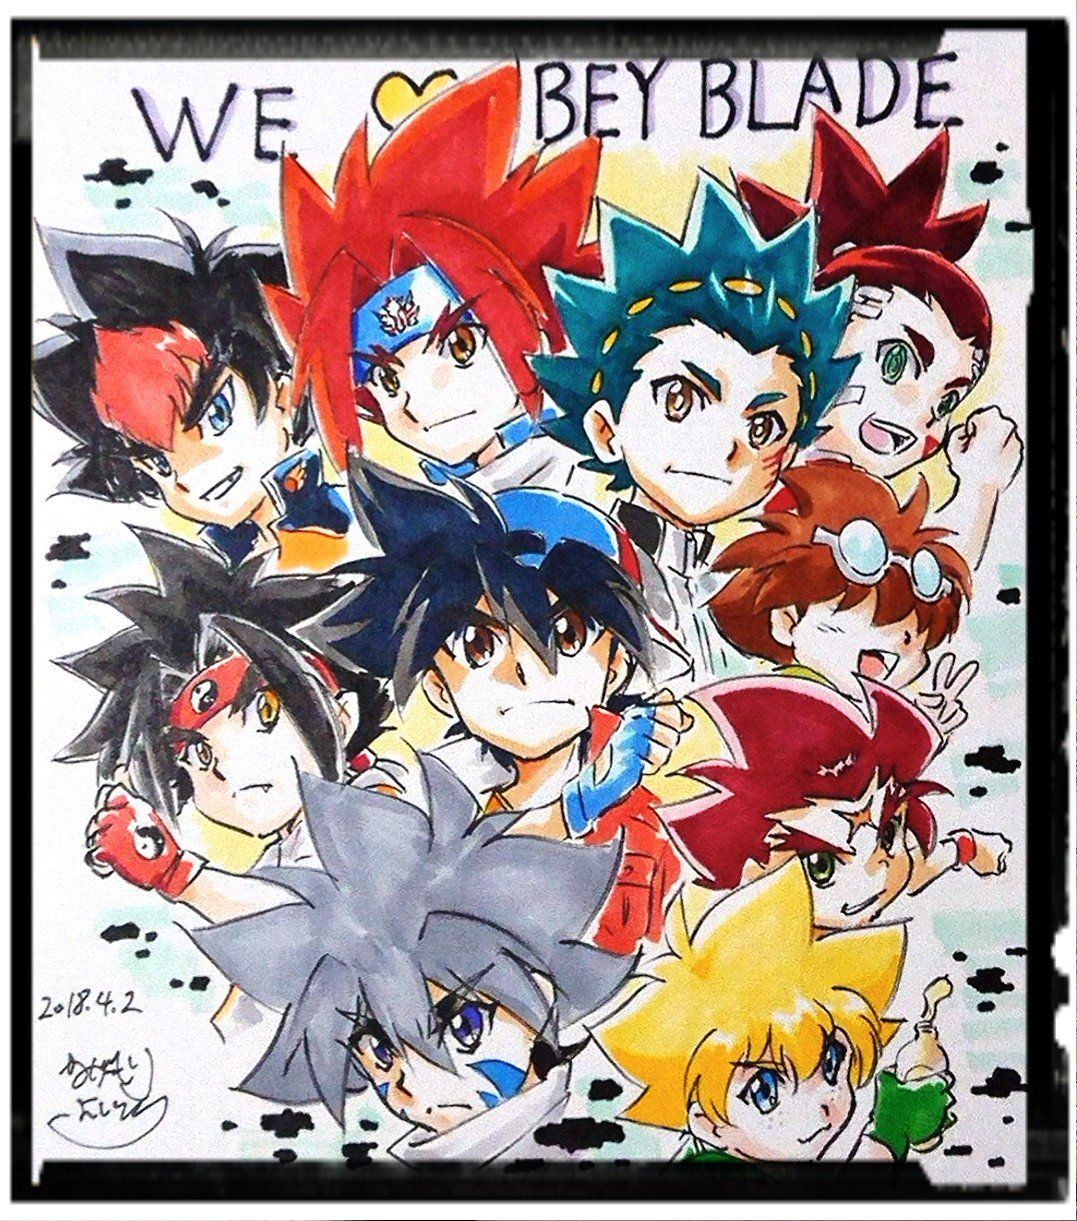 Beyblade 20012019 What is anime, Anime crossover, Anime